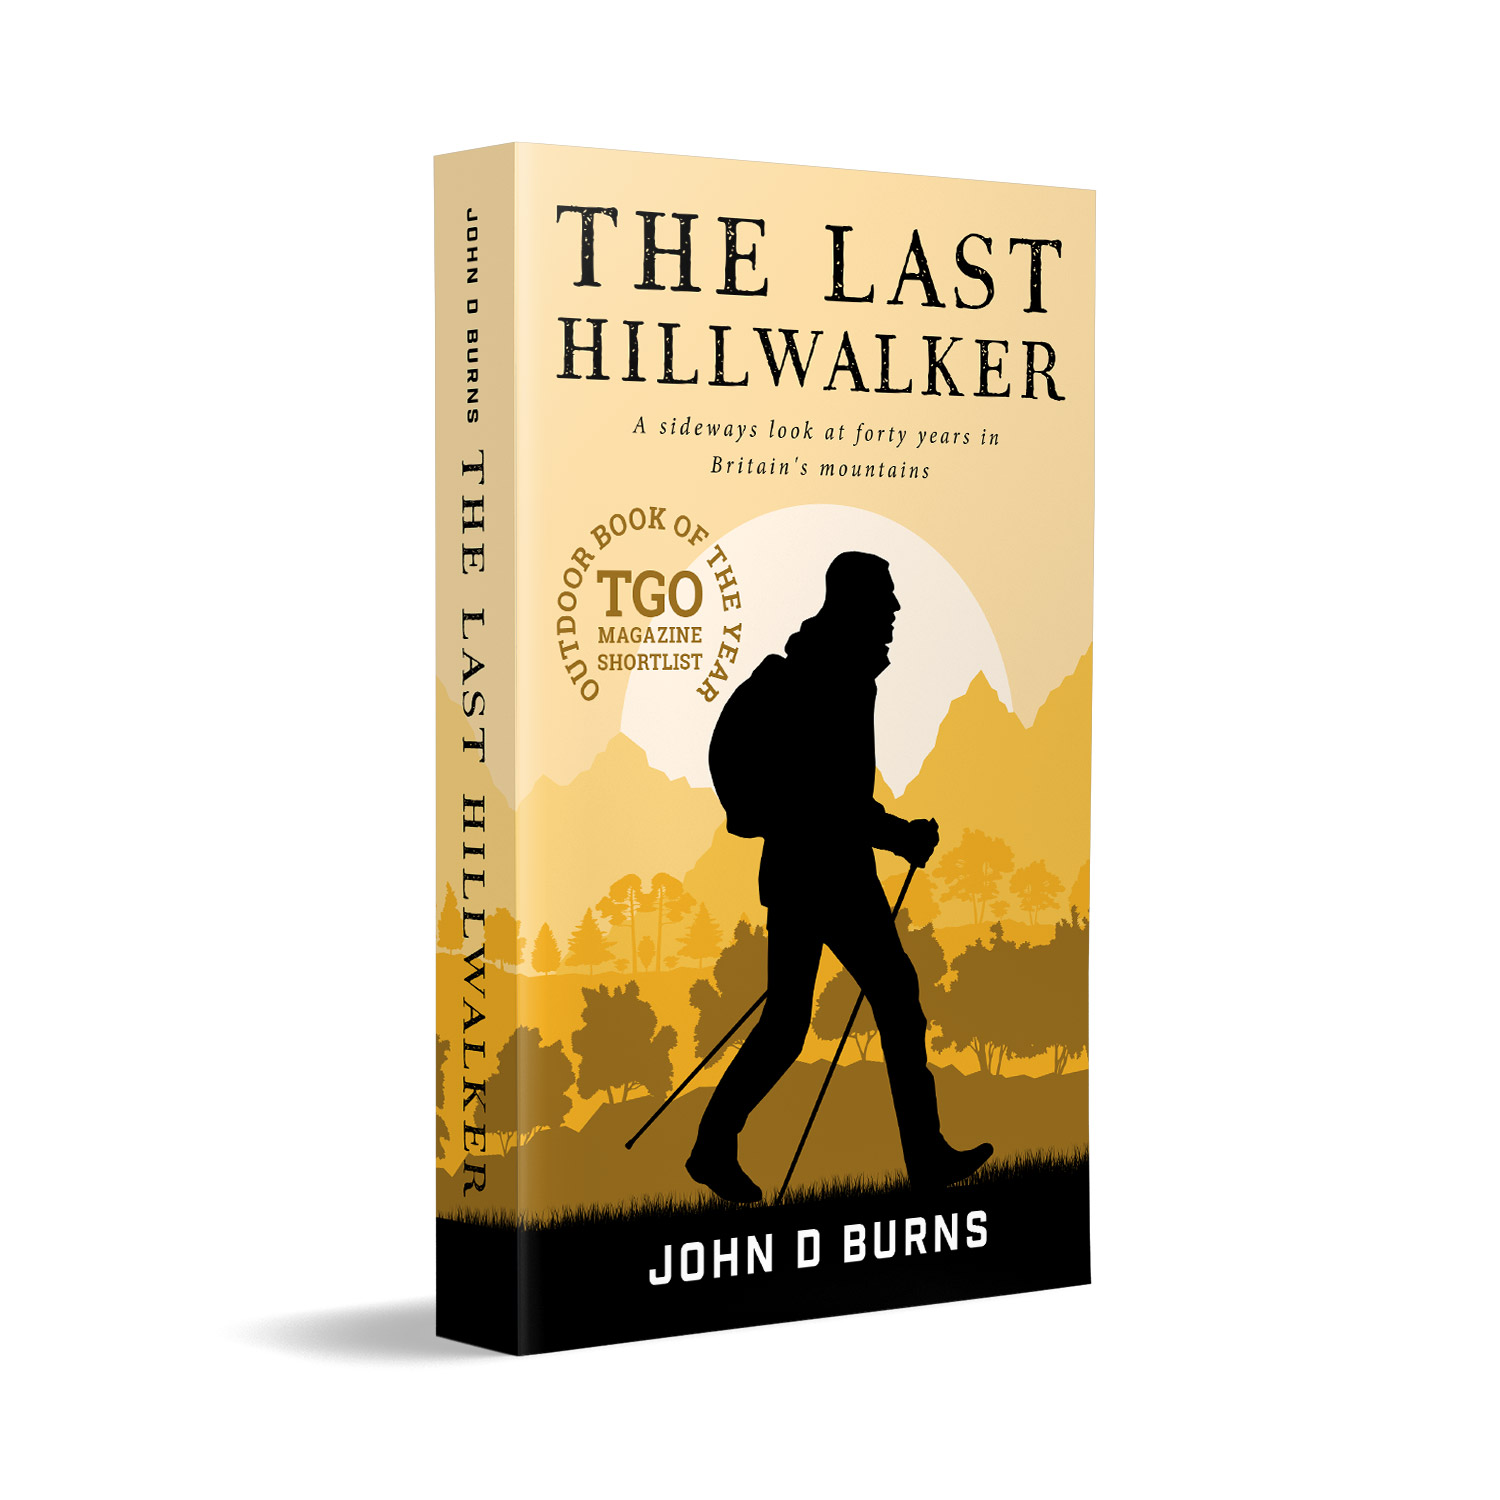 'The Last Hillwalker' is an excellent, funny and moving memoir about walking Britain's hills and mountains, by author John D Burns. The book cover and interior were designed by Mark Thomas, of coverness.com. To find out more about my book design services, please visit www.coverness.com.